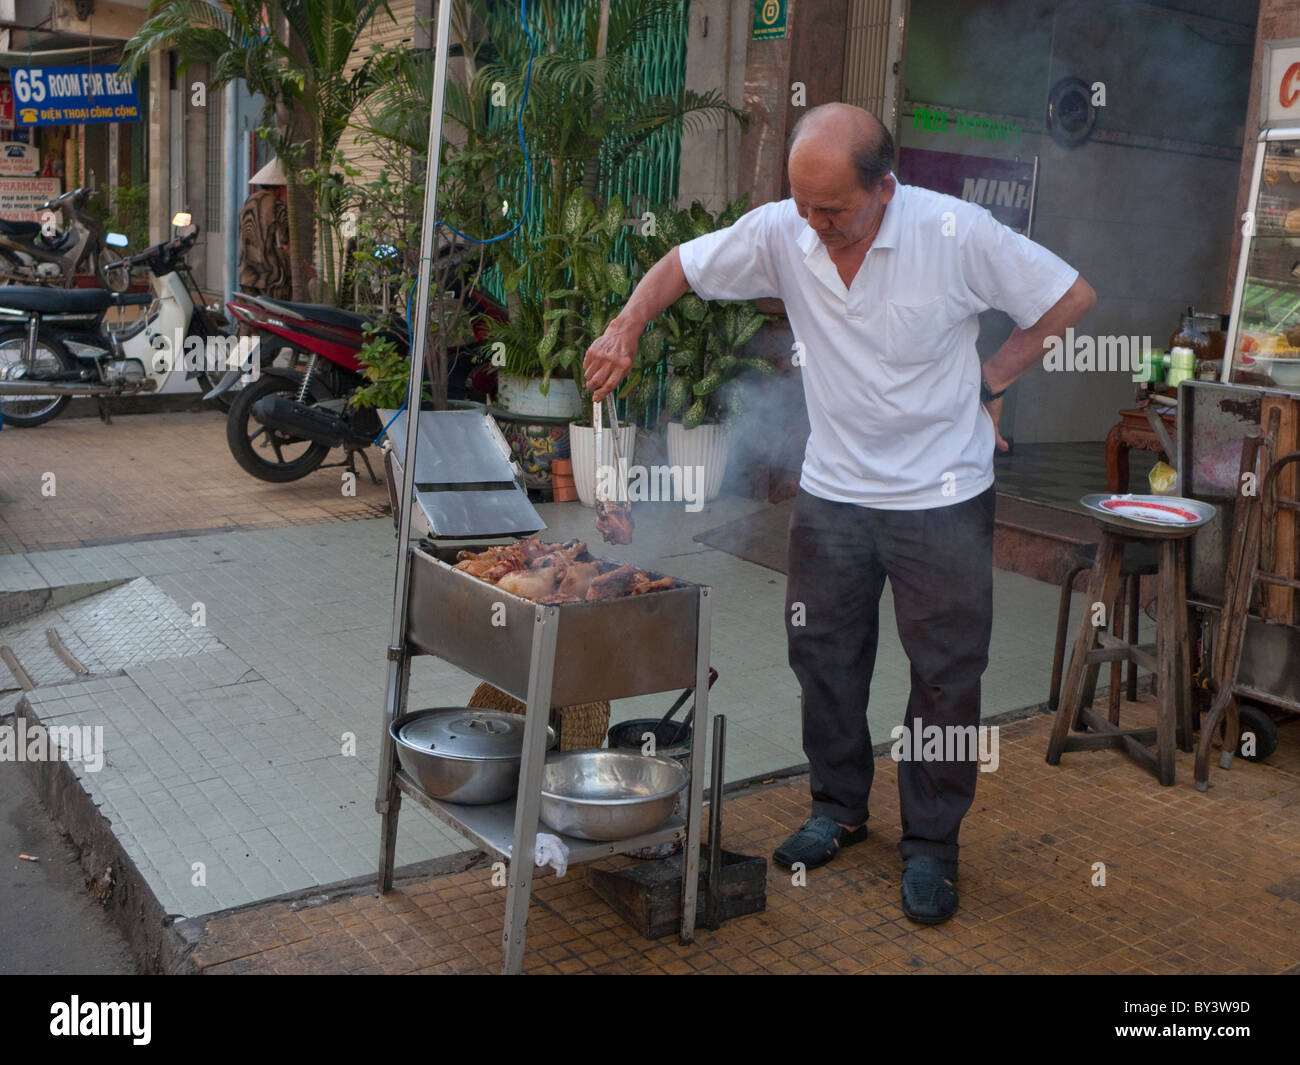 A food vendor sits cooking fried bananas for sale on a street in Ho Chi Minh, Vietnam - Stock Image